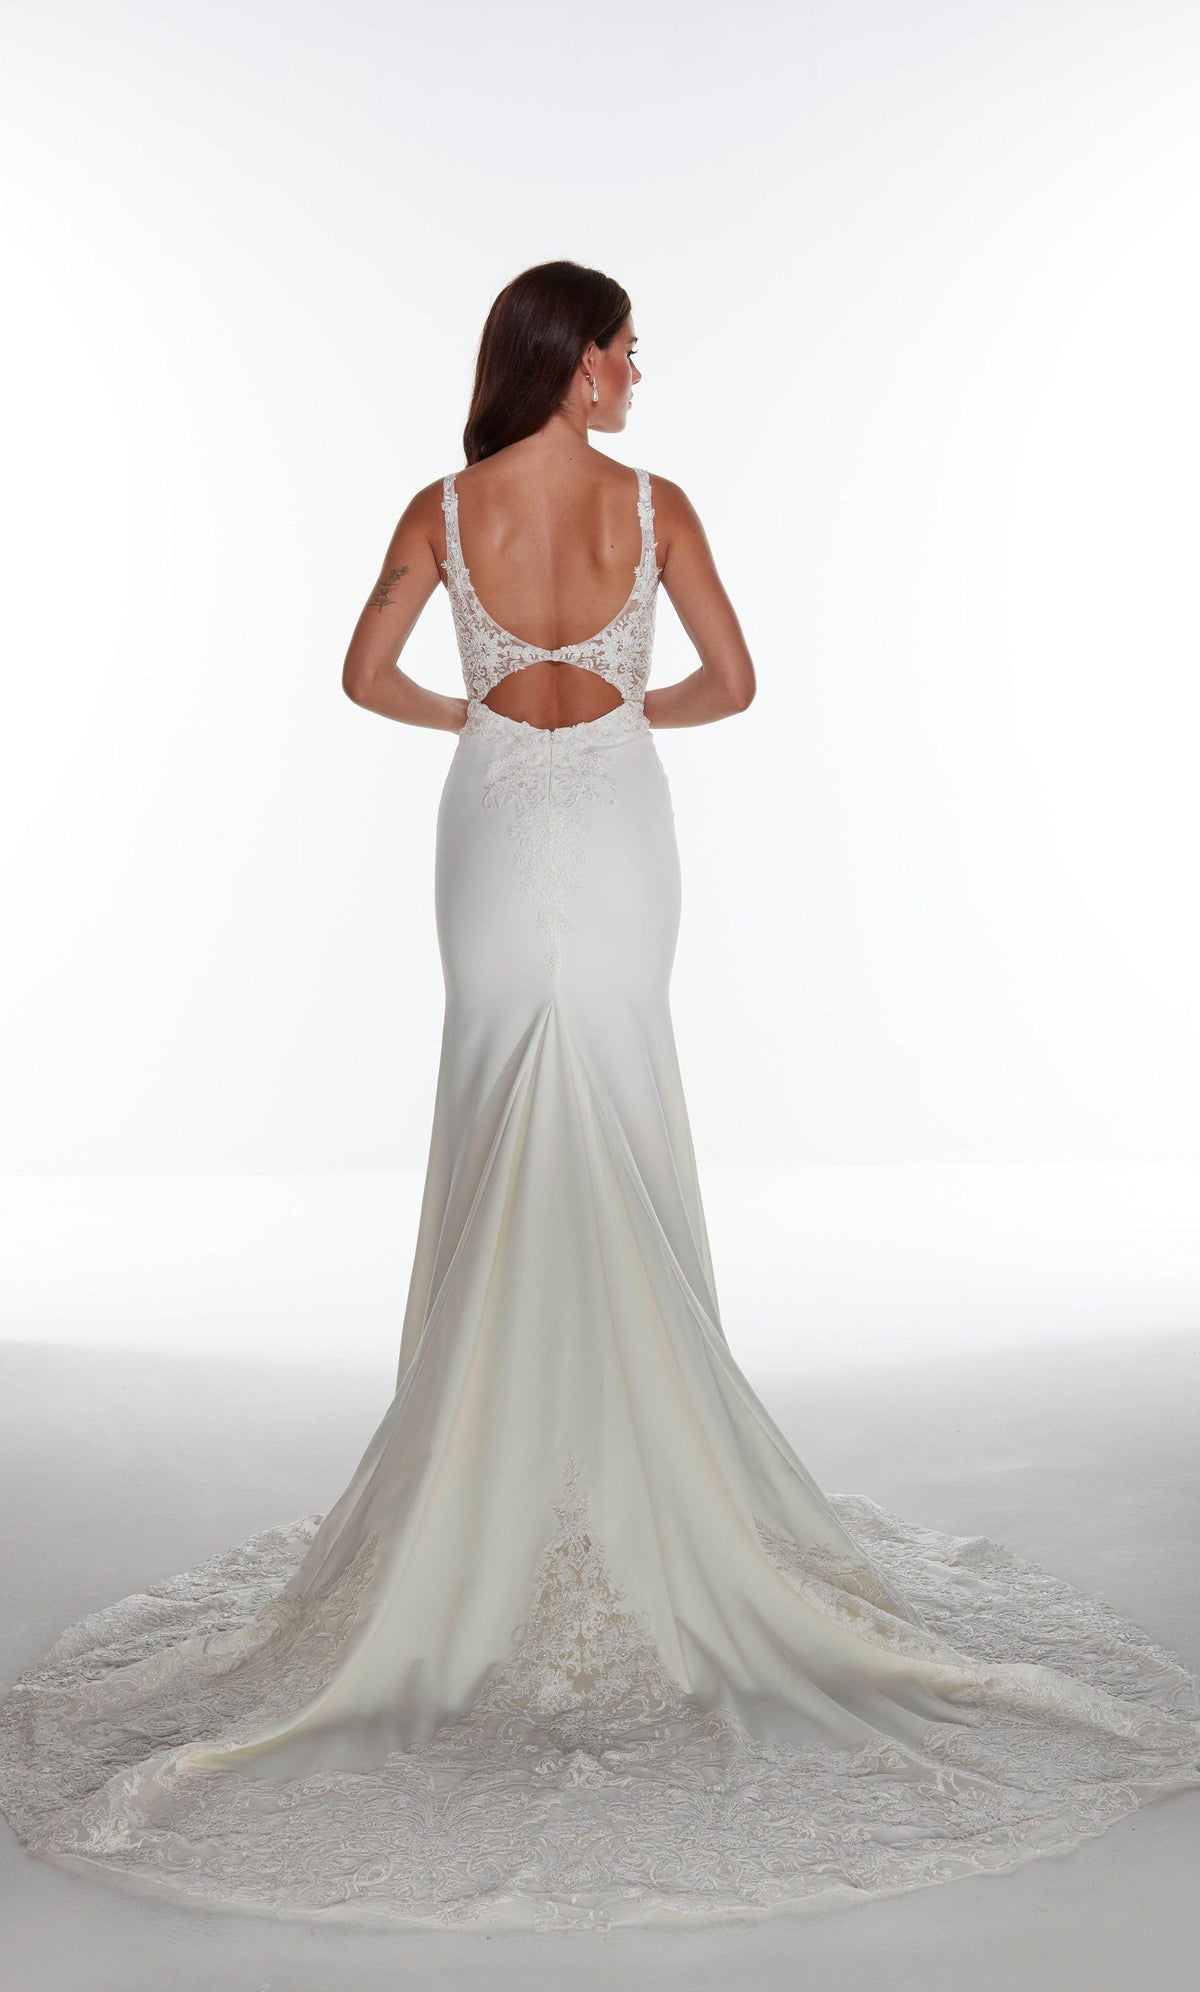 Ivory mermaid evening gown with a keyhole back, sheer lace accents, and train